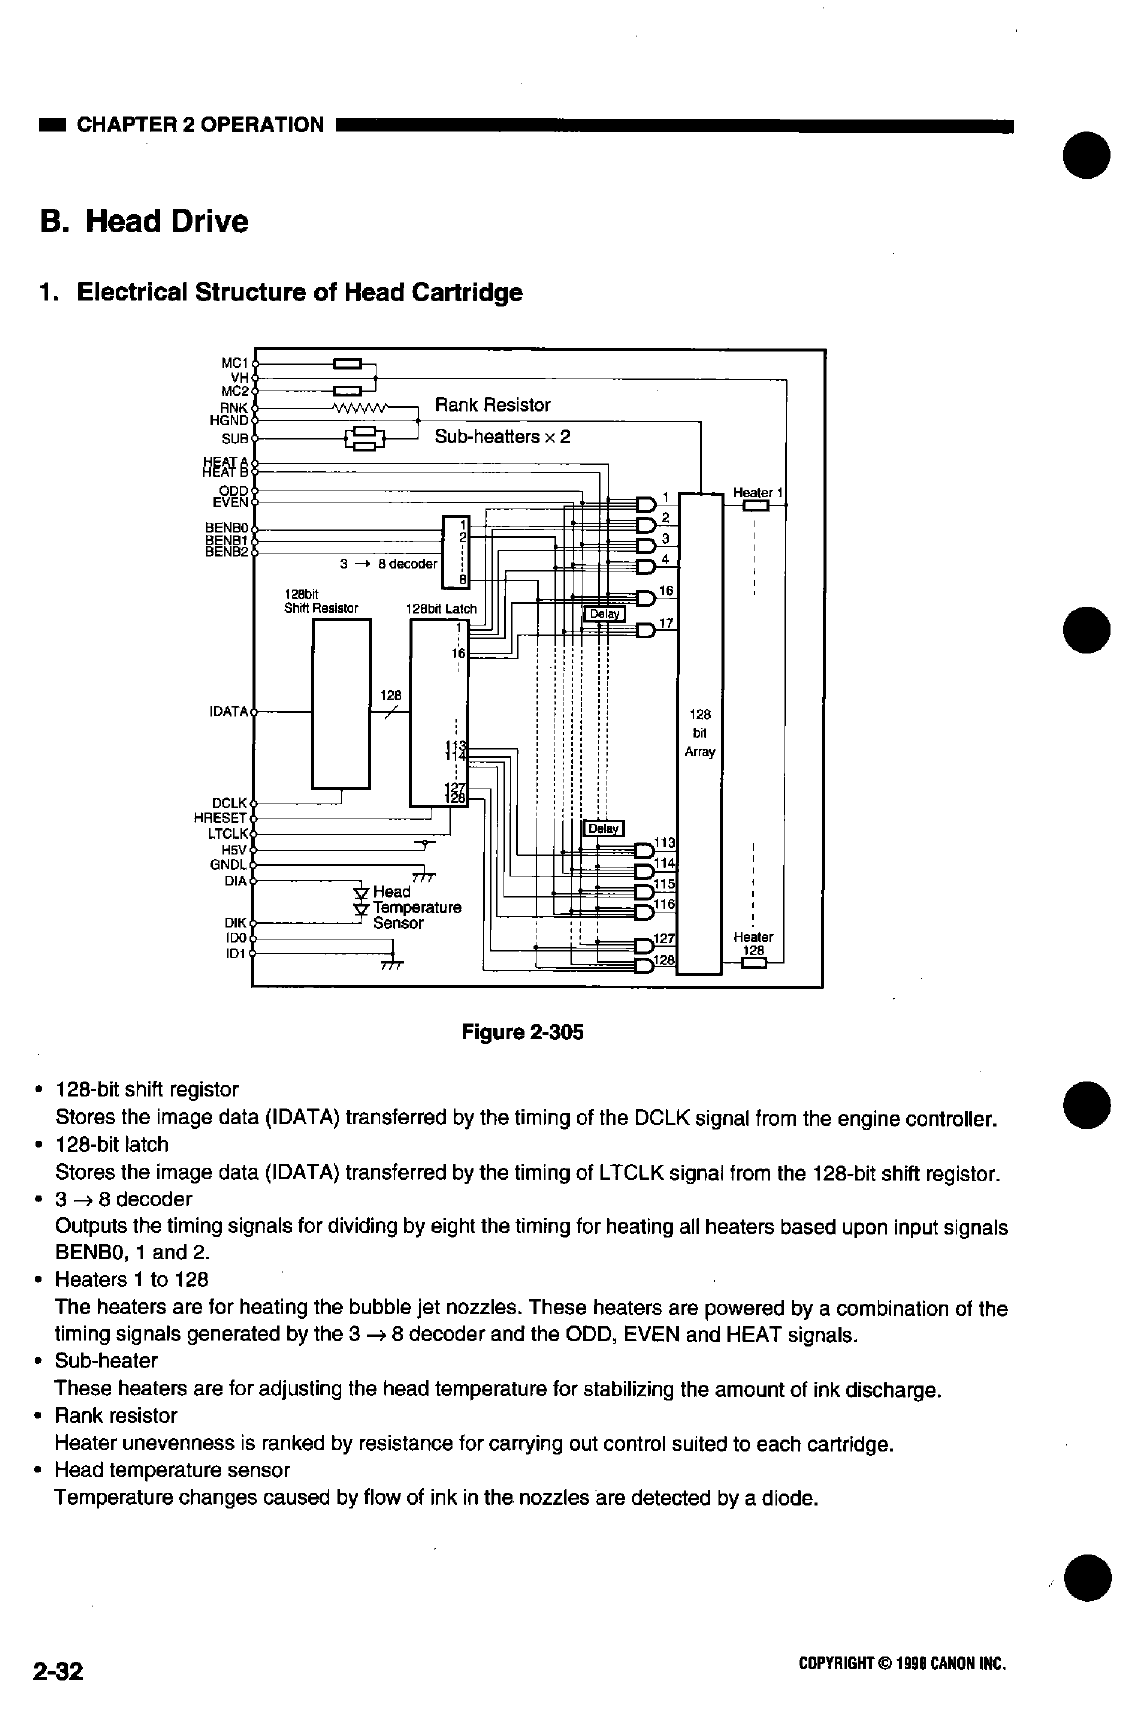 ipf wiring diagram chrysler diagrams schematics canon wide format bubblejet bj w7000 parts and service manual